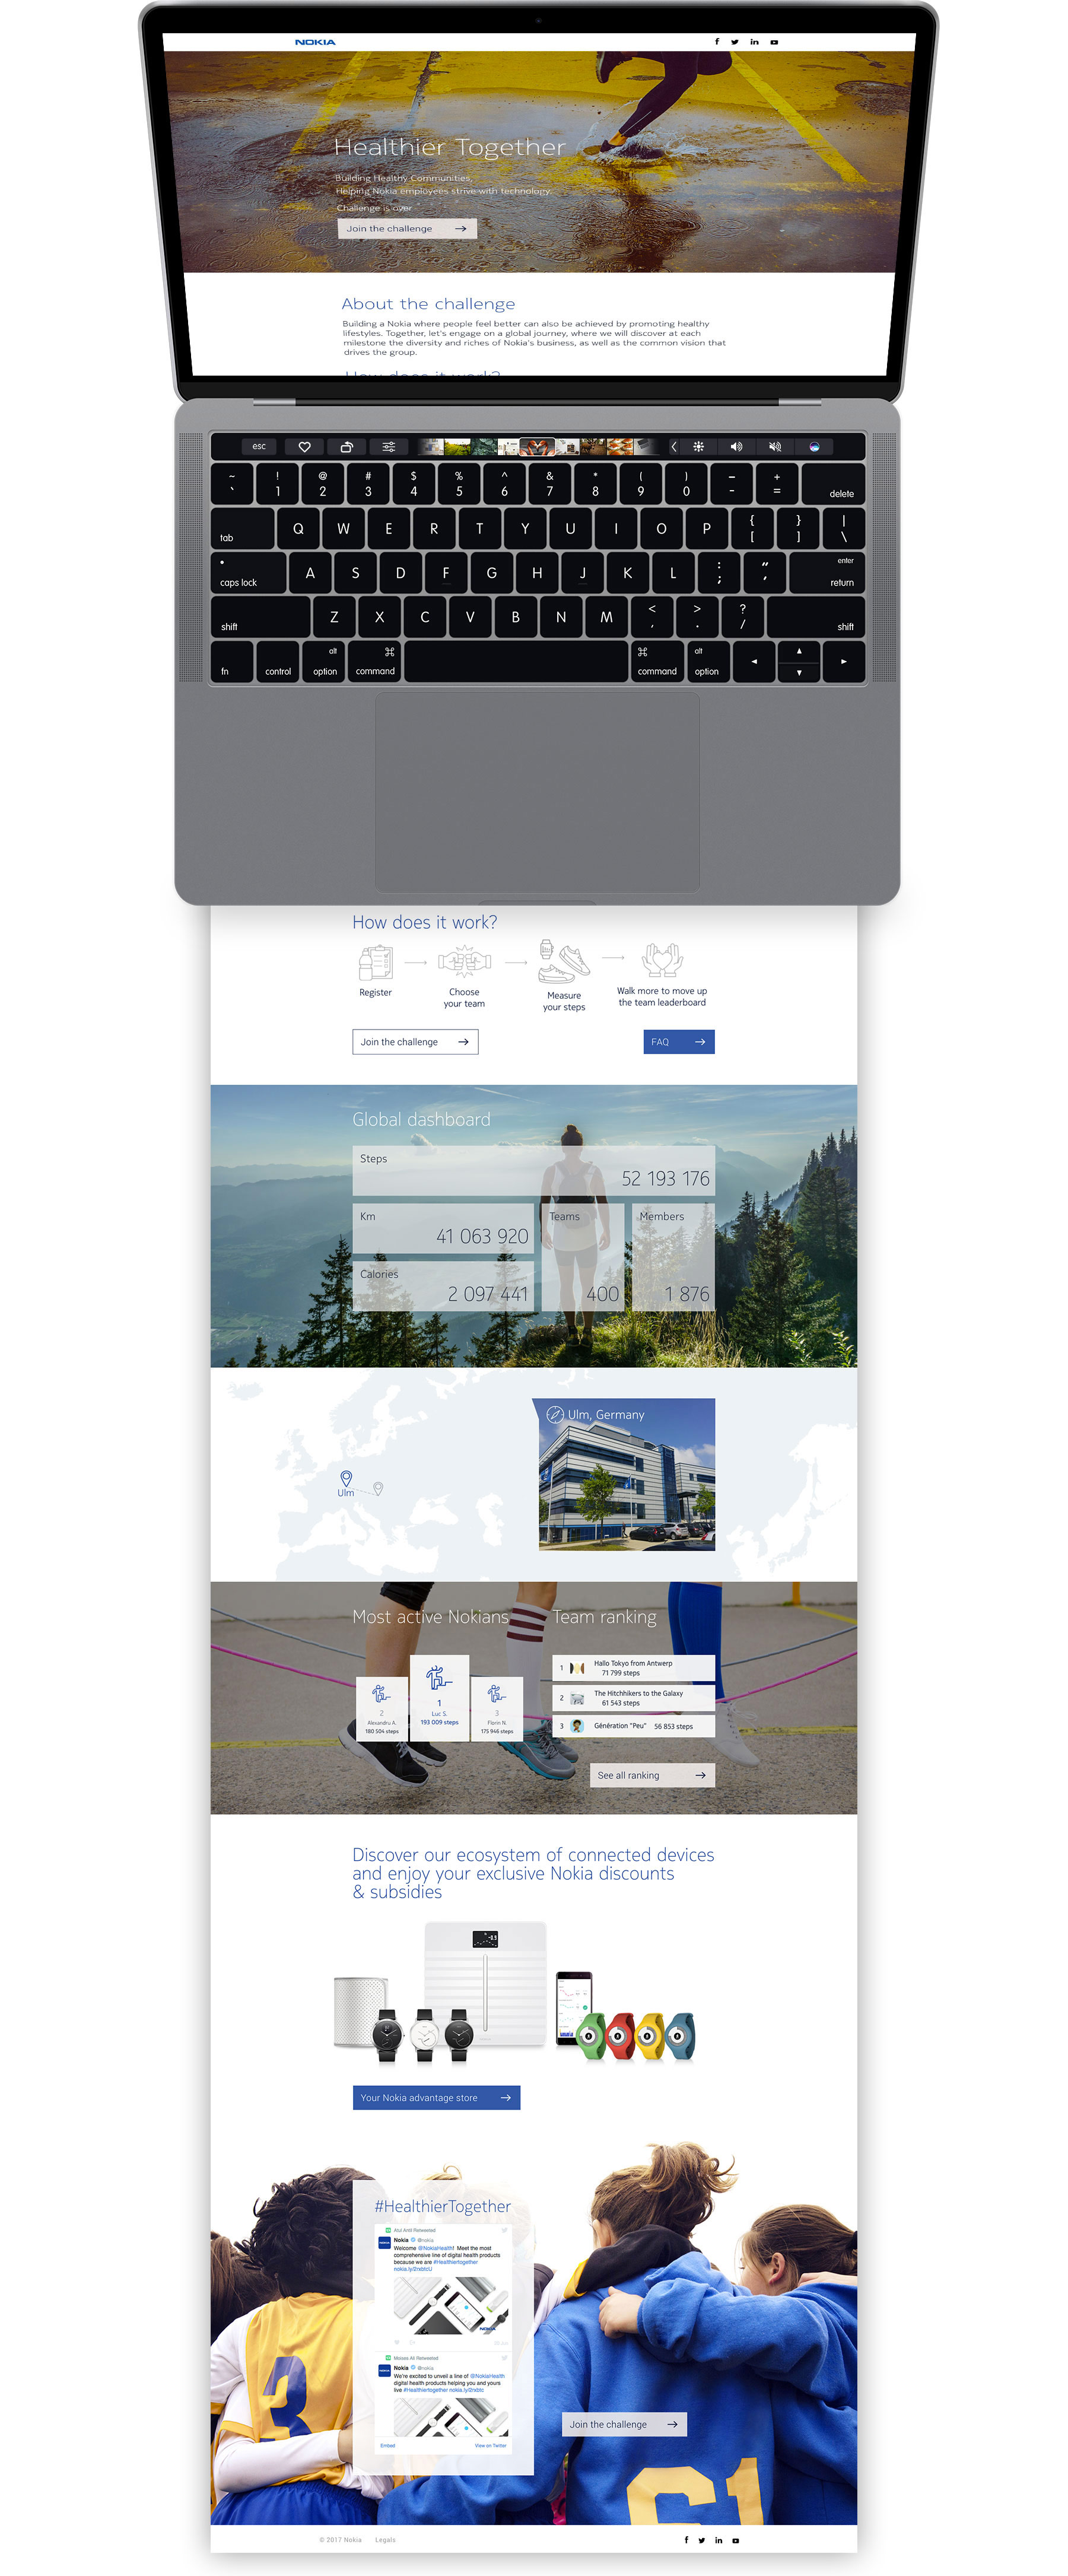 Nokia Healthier Together - webdesign et developpement web Sharing Agency